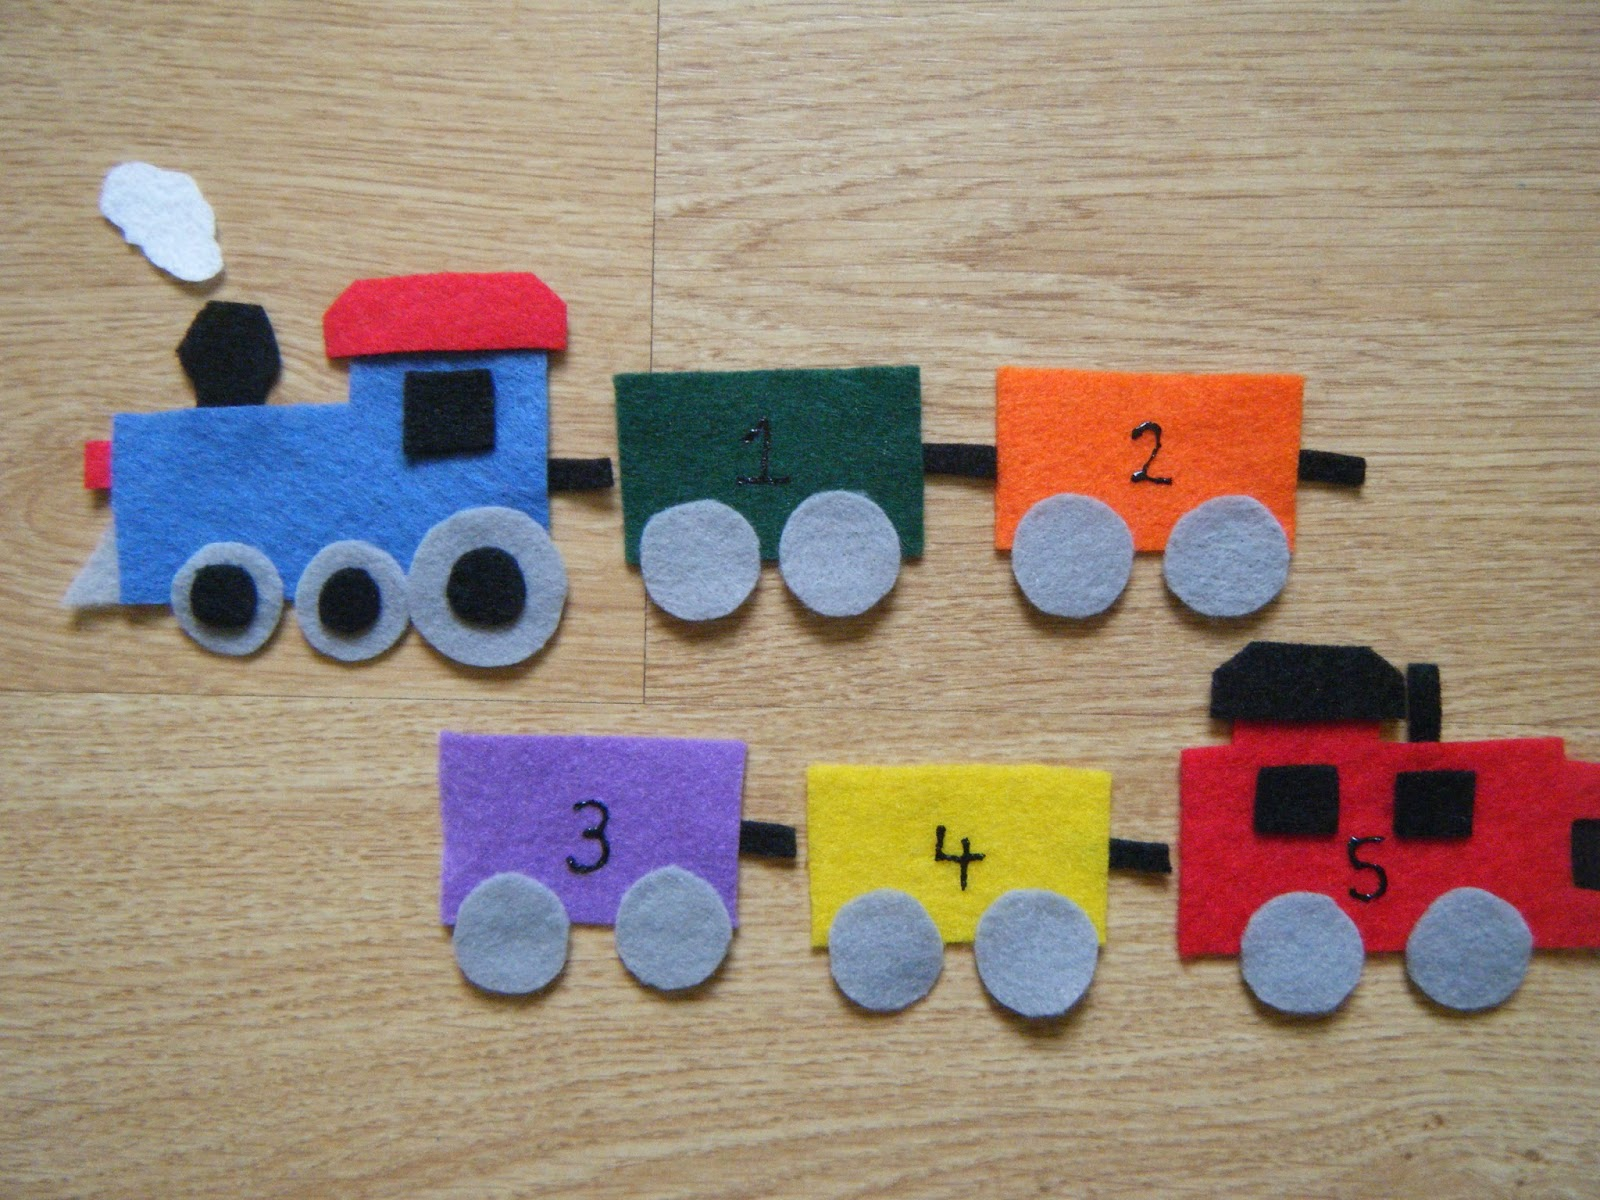 Ideas for early childhood june 2013 for Transportation crafts for preschoolers